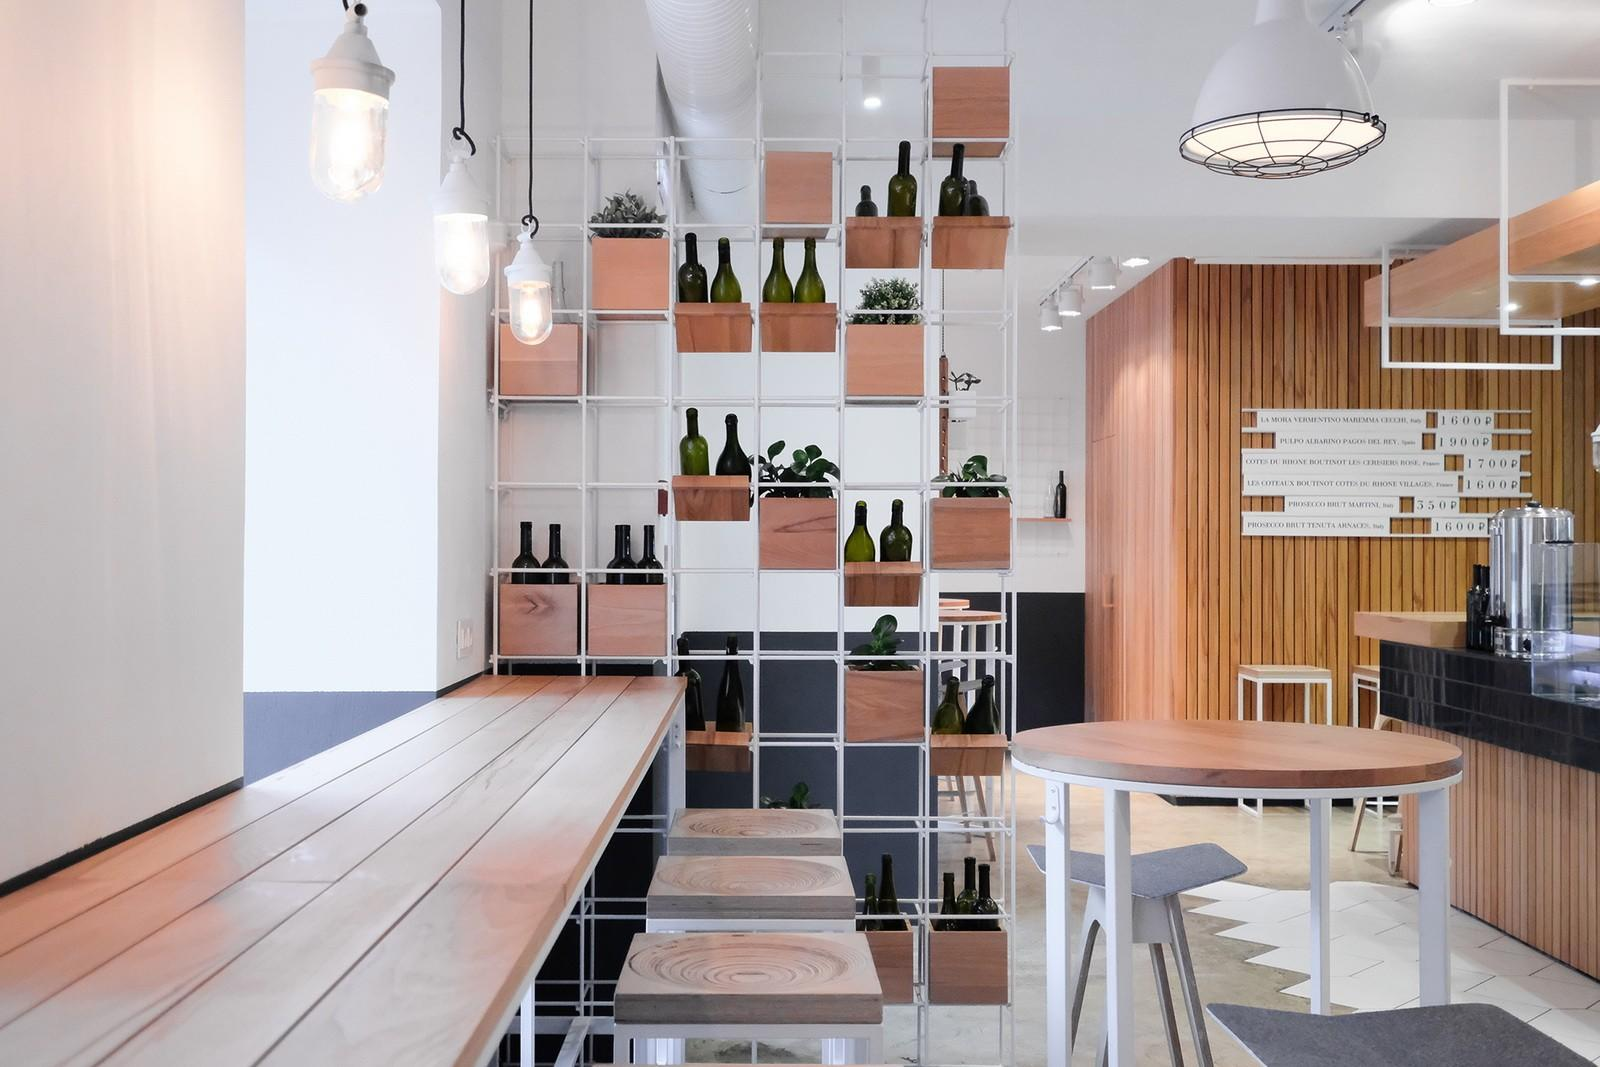 OUYEE modern small cafe design ideas bulk production for furniture-2